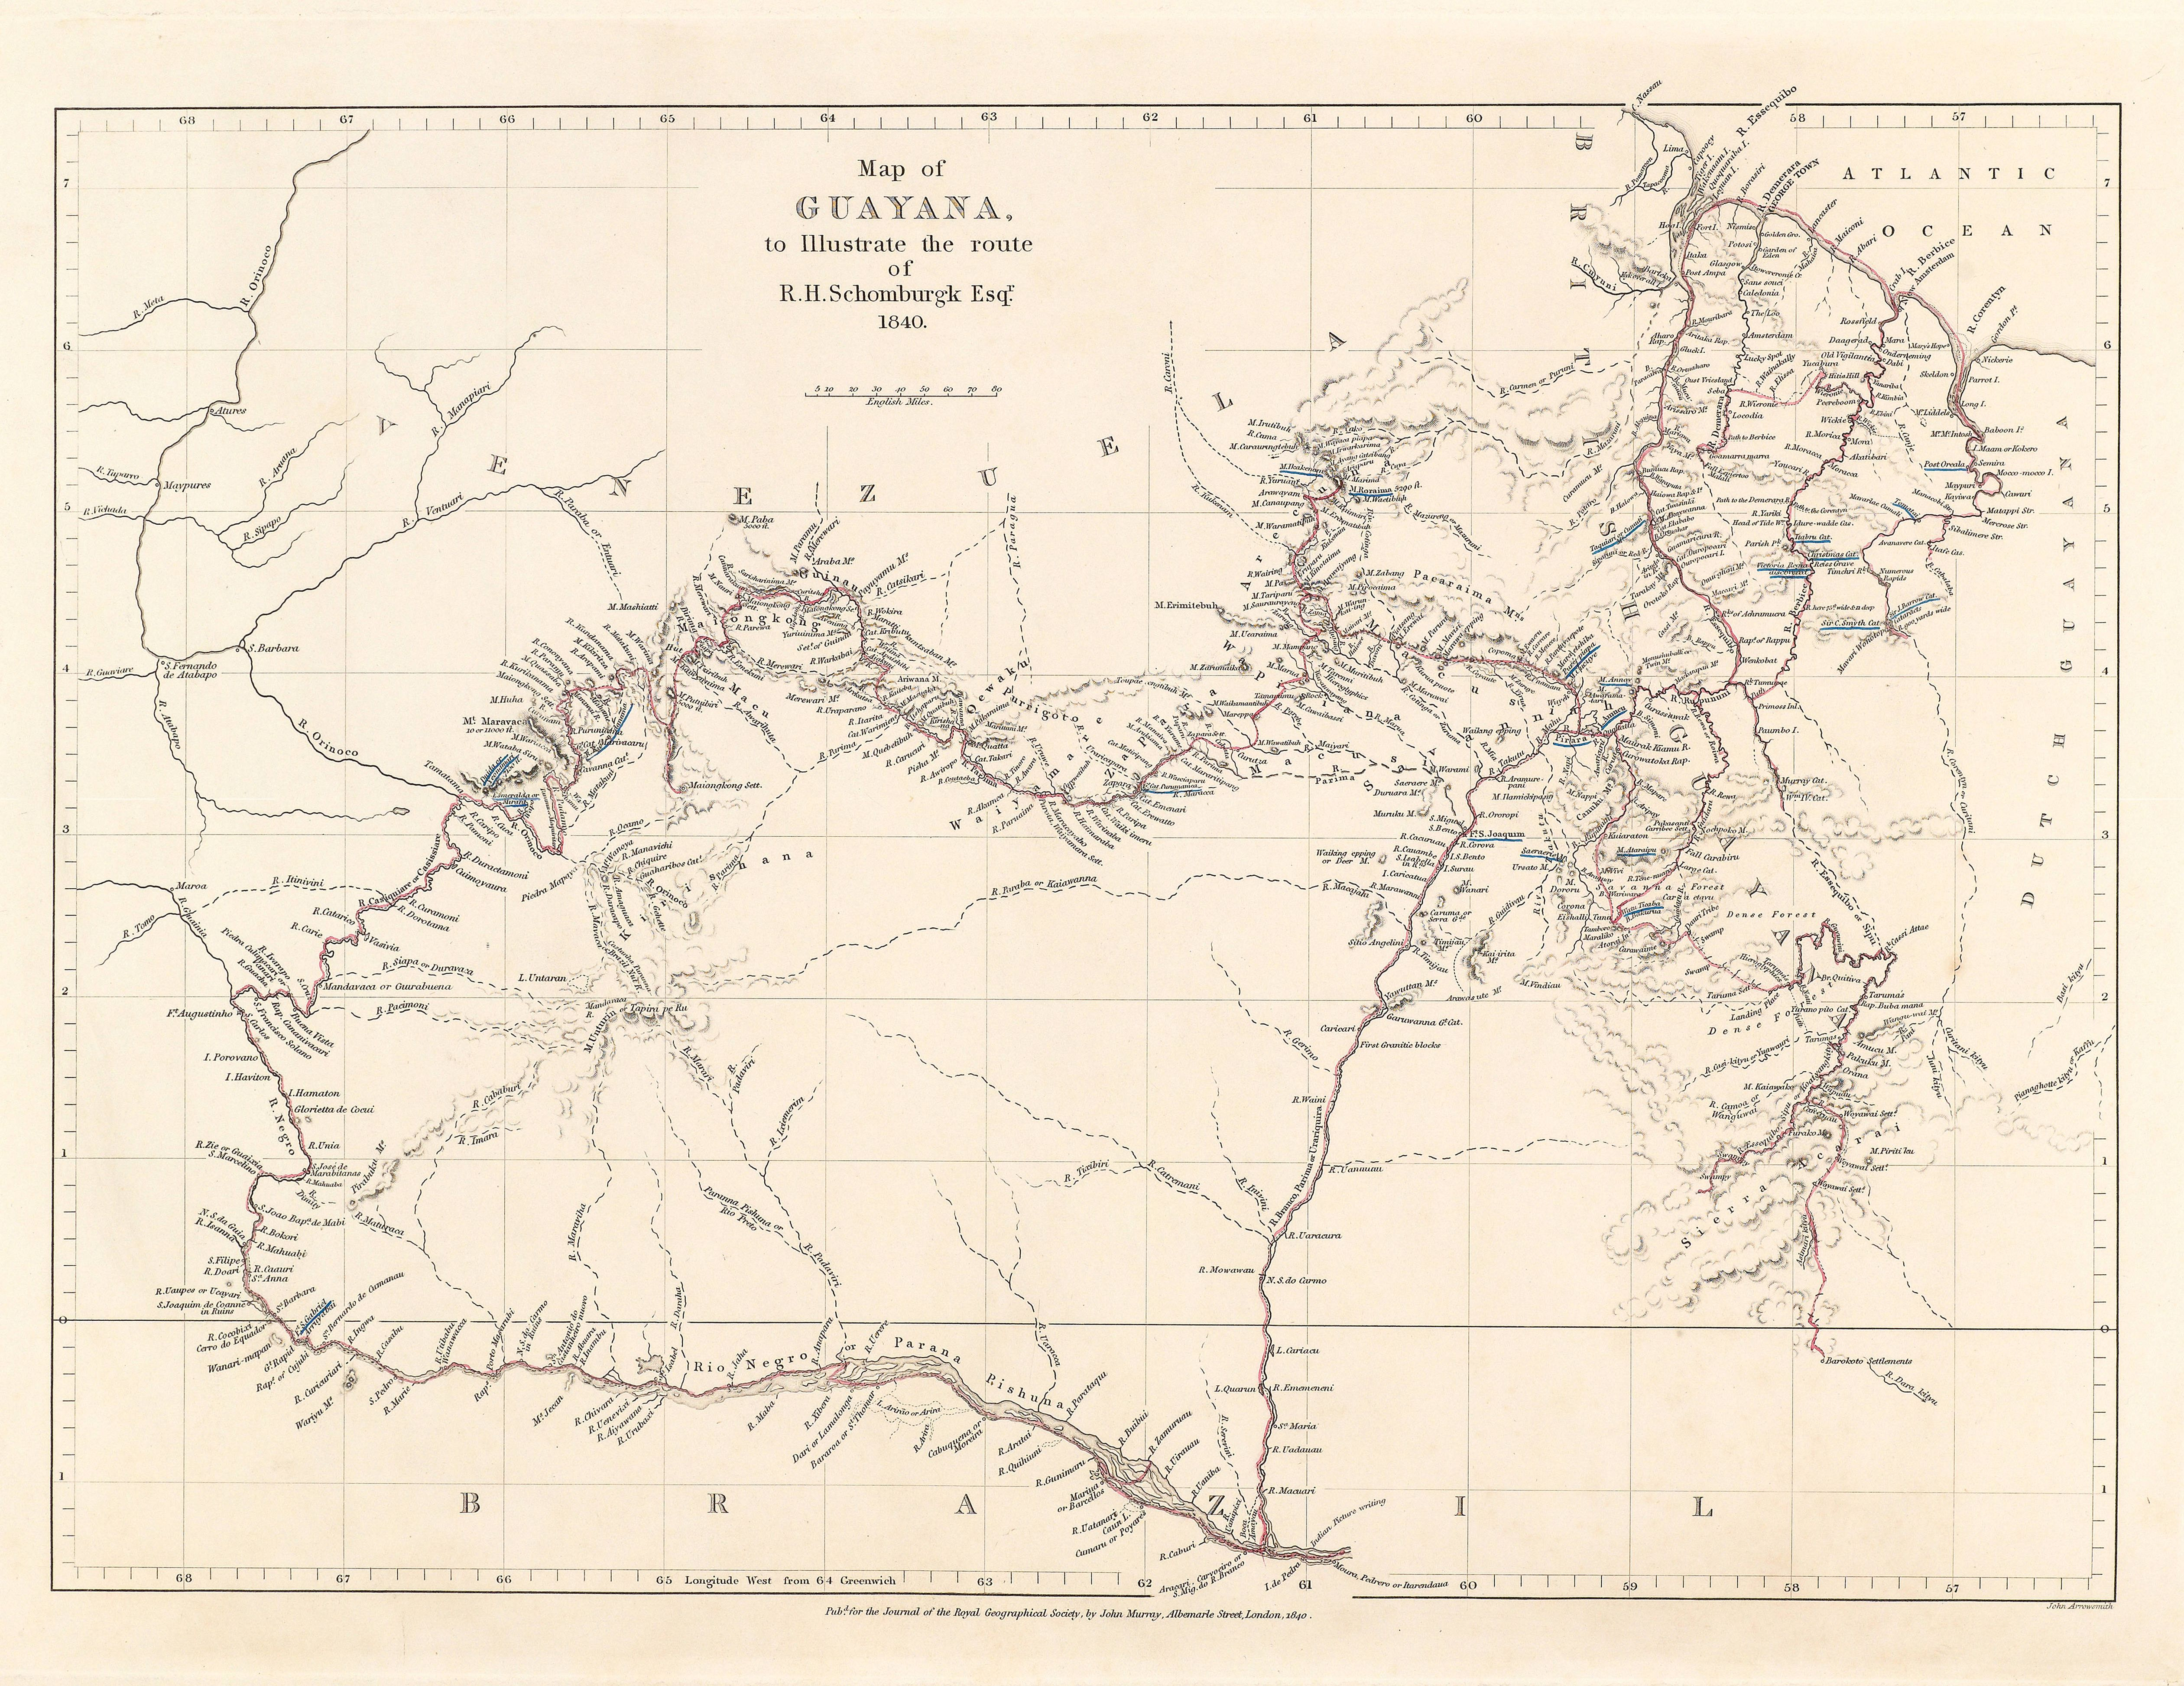 Schomburgk's 1840 map of his route through Guayana